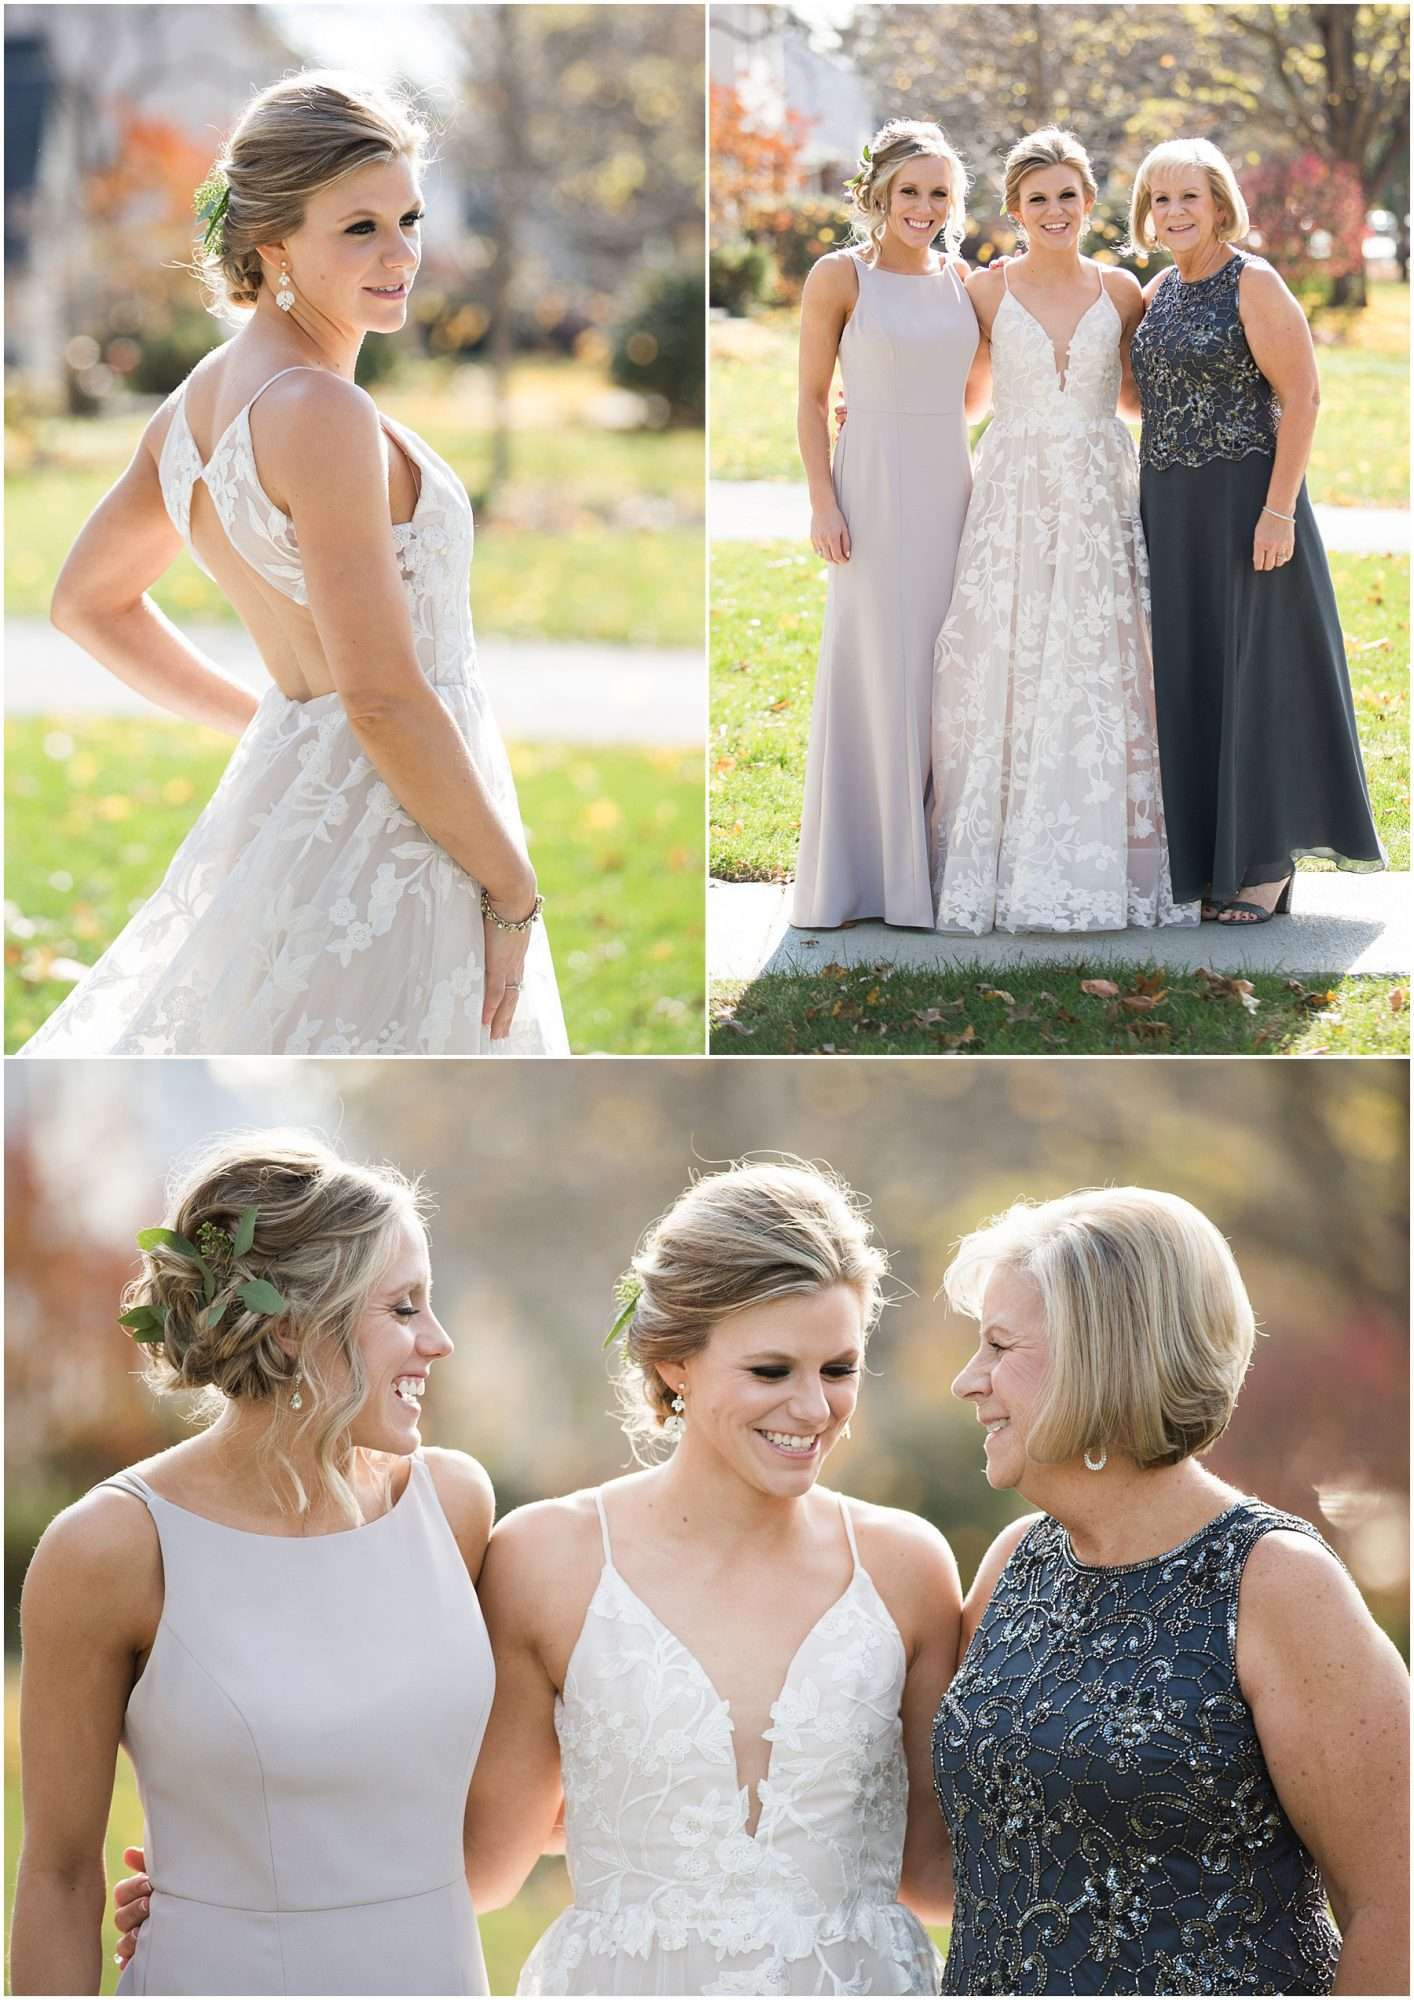 Wedding at the Ohio Statehouse | Columbus Ohio Weddings 40